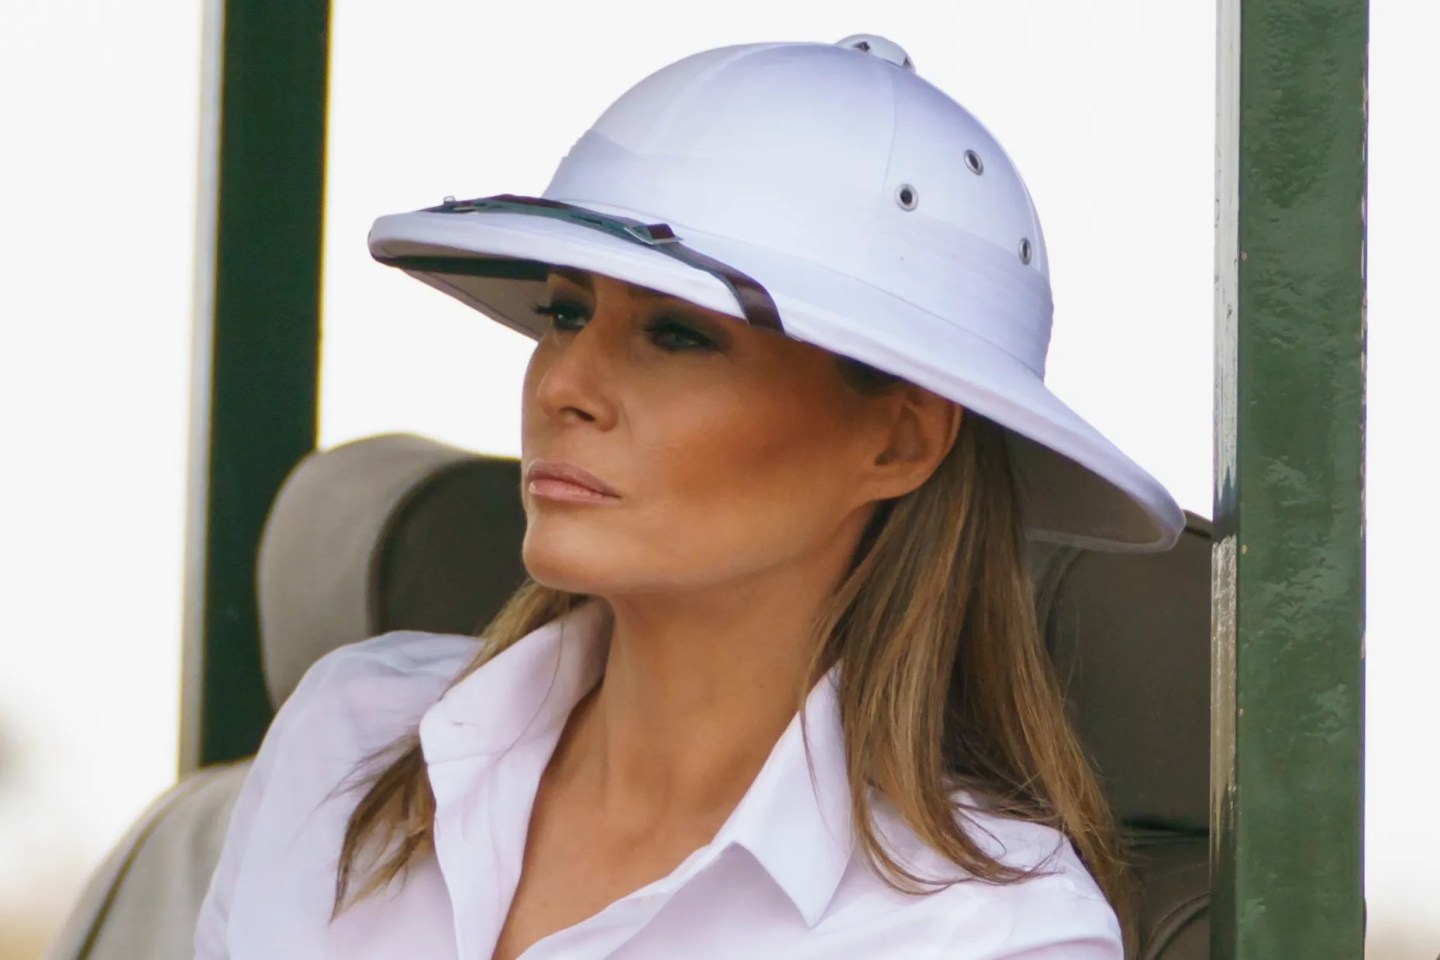 First lady Melania Trump looks out over Nairobi National Park in Nairobi, Kenya, Oct. 5, 2018, during her four-country tour of Africa.